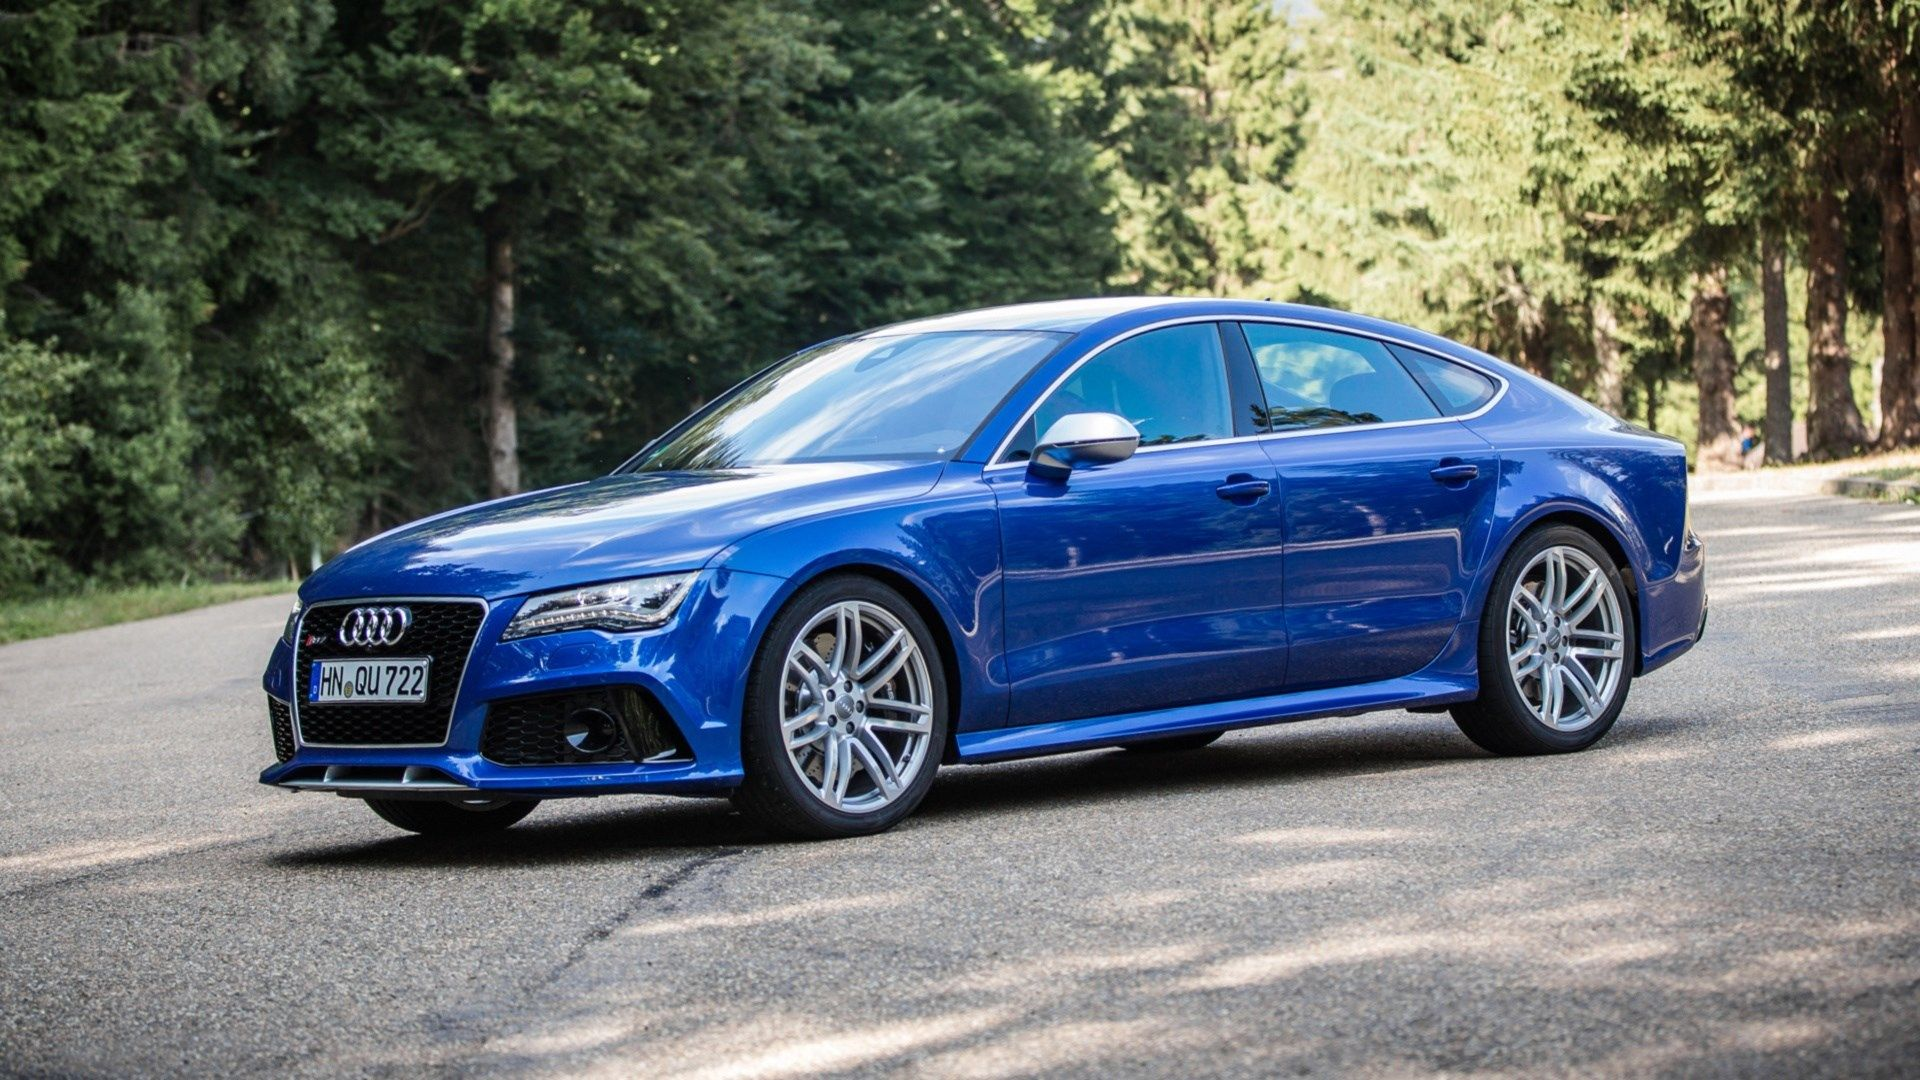 2017 03 06 audi rs7 image Full HD Wallpapers s